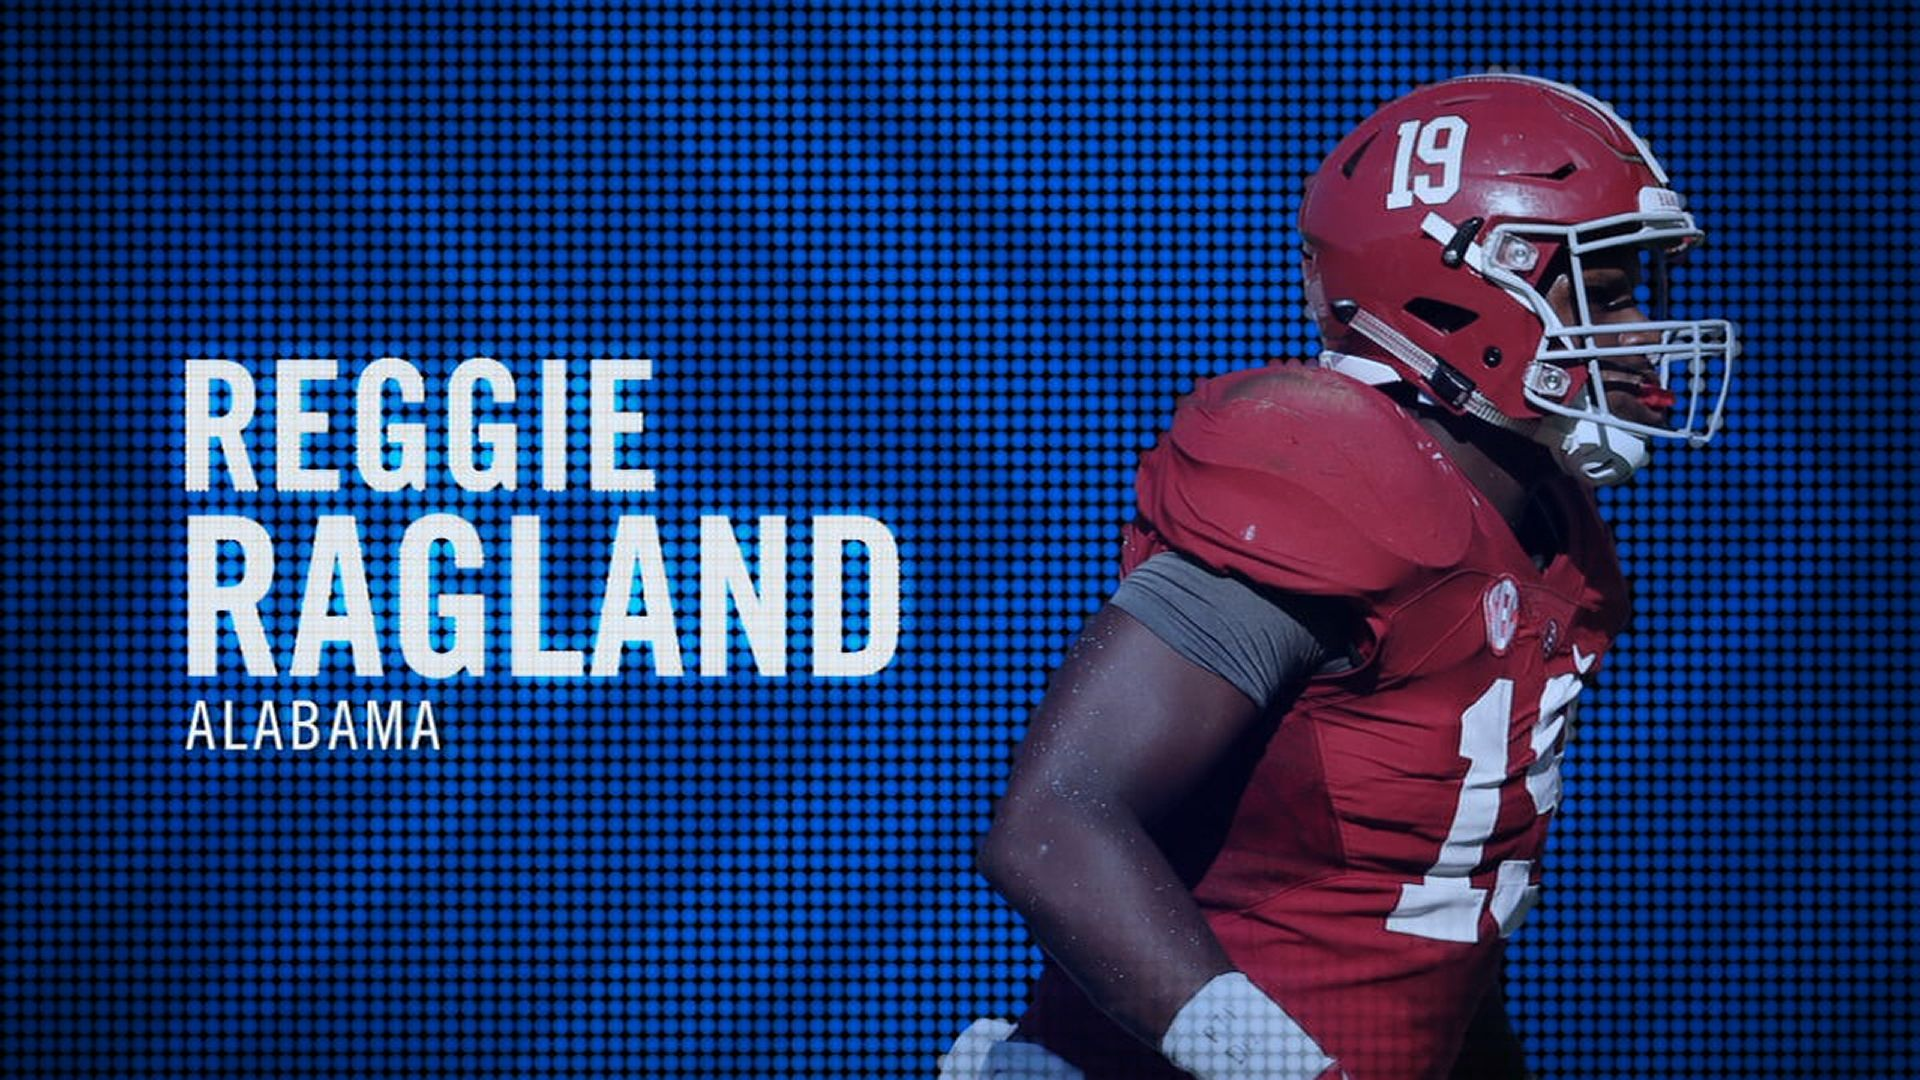 I am the SEC: Alabama's Reggie Ragland